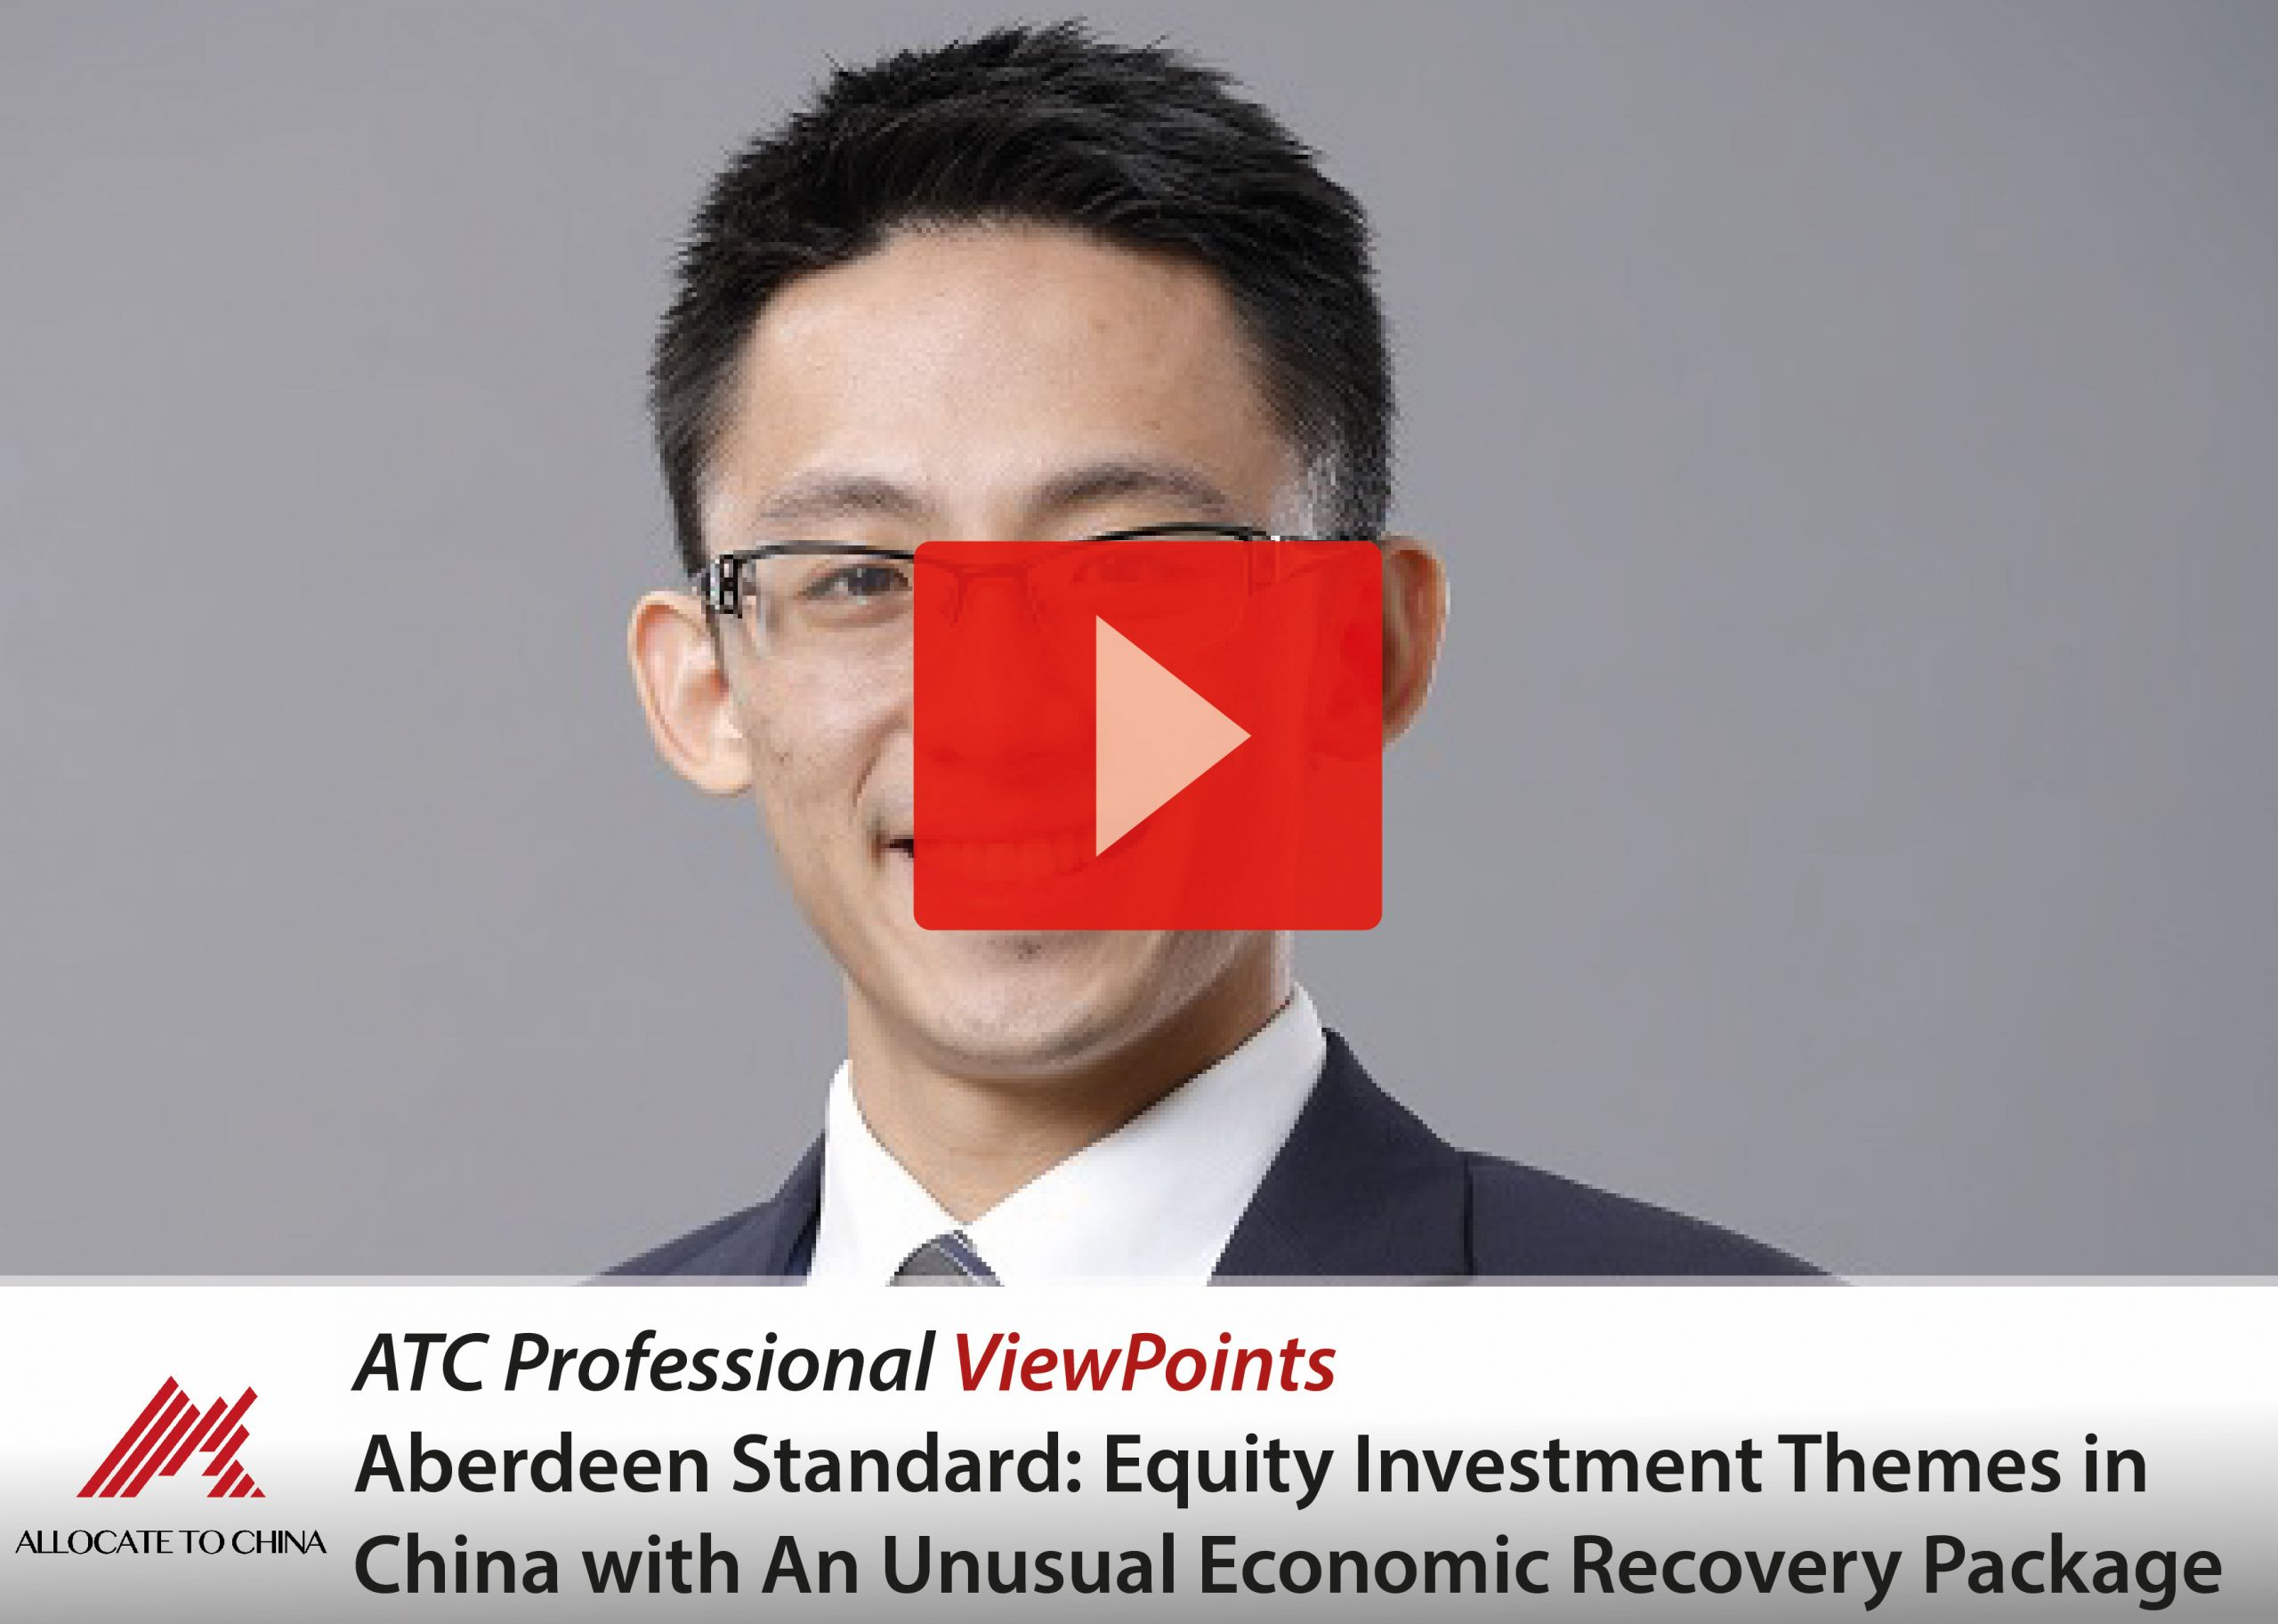 ATC Professional ViewPoints: Nicolas Chui full video cover 02